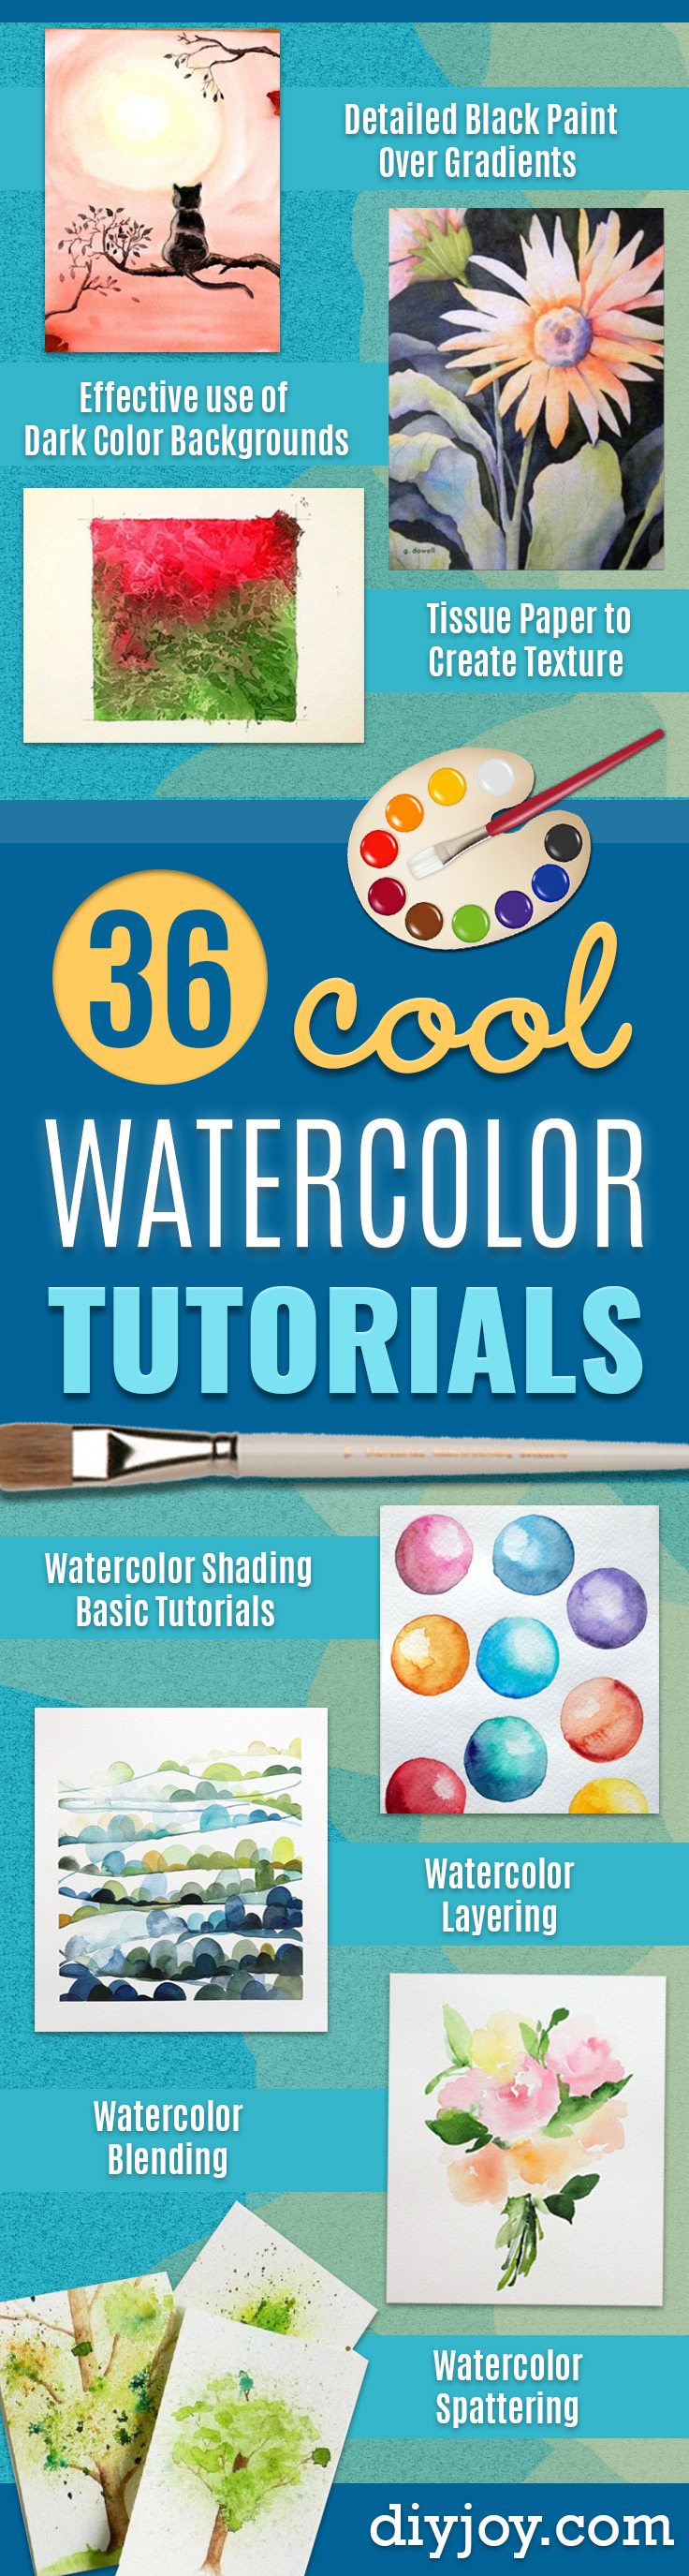 Watercolor Tutorials and Techniques - How To Paint With Watercolor - Make Watercolor Flowers, Ocean, Sky, Abstract People, Landscapes, Buildings, Animals, Portraits, Sunset - Step by Step Art Lessons for Beginners - Easy Video Tutorials and How To for Watercolors and Paint Washes #art #watercolor